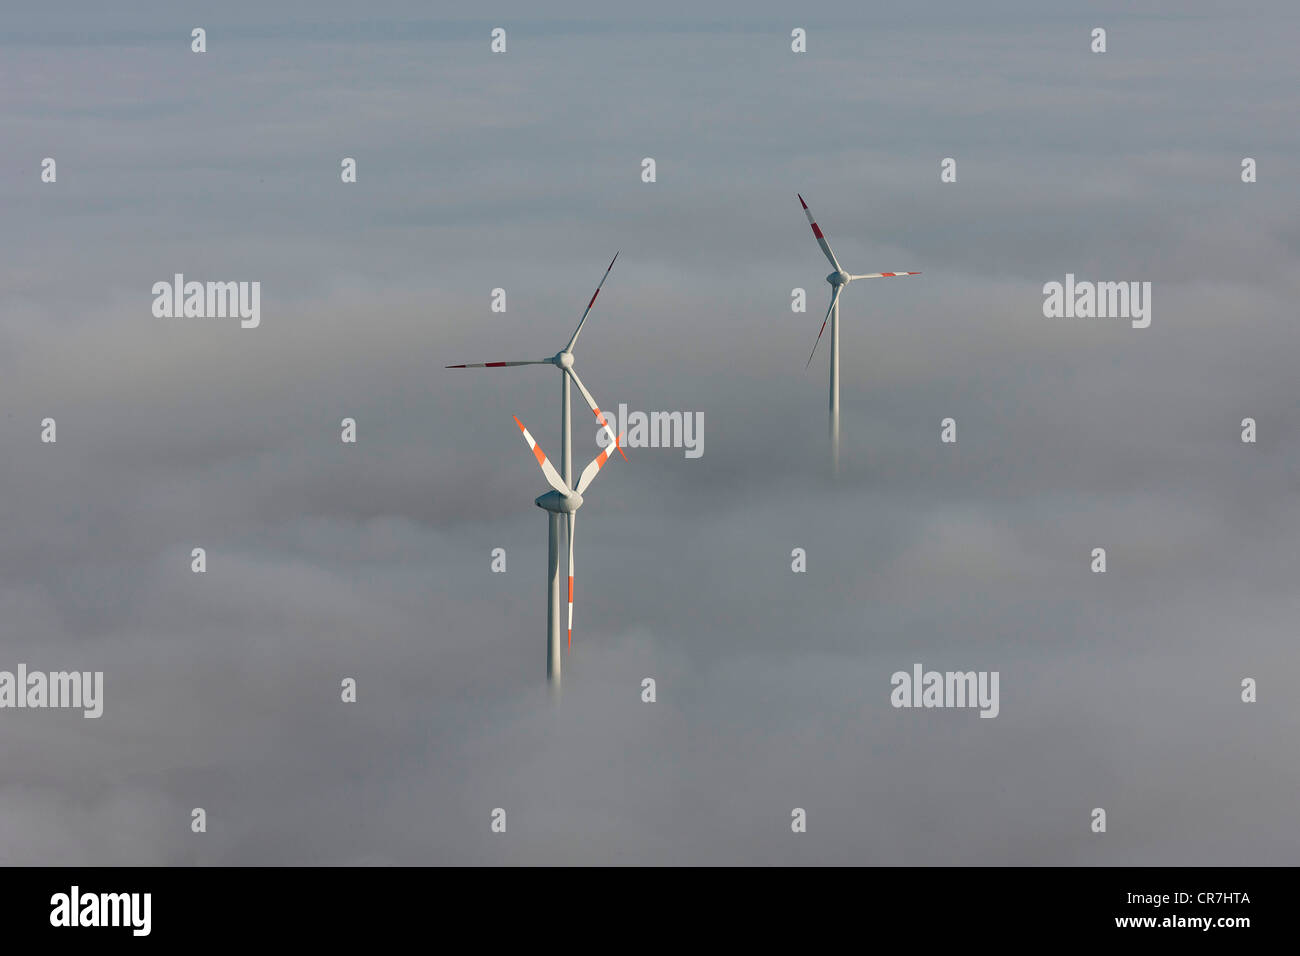 Aerial view, wind turbines sticking out from cloud cover, Heldrungen, Thuringia, Germany, Europe - Stock Image